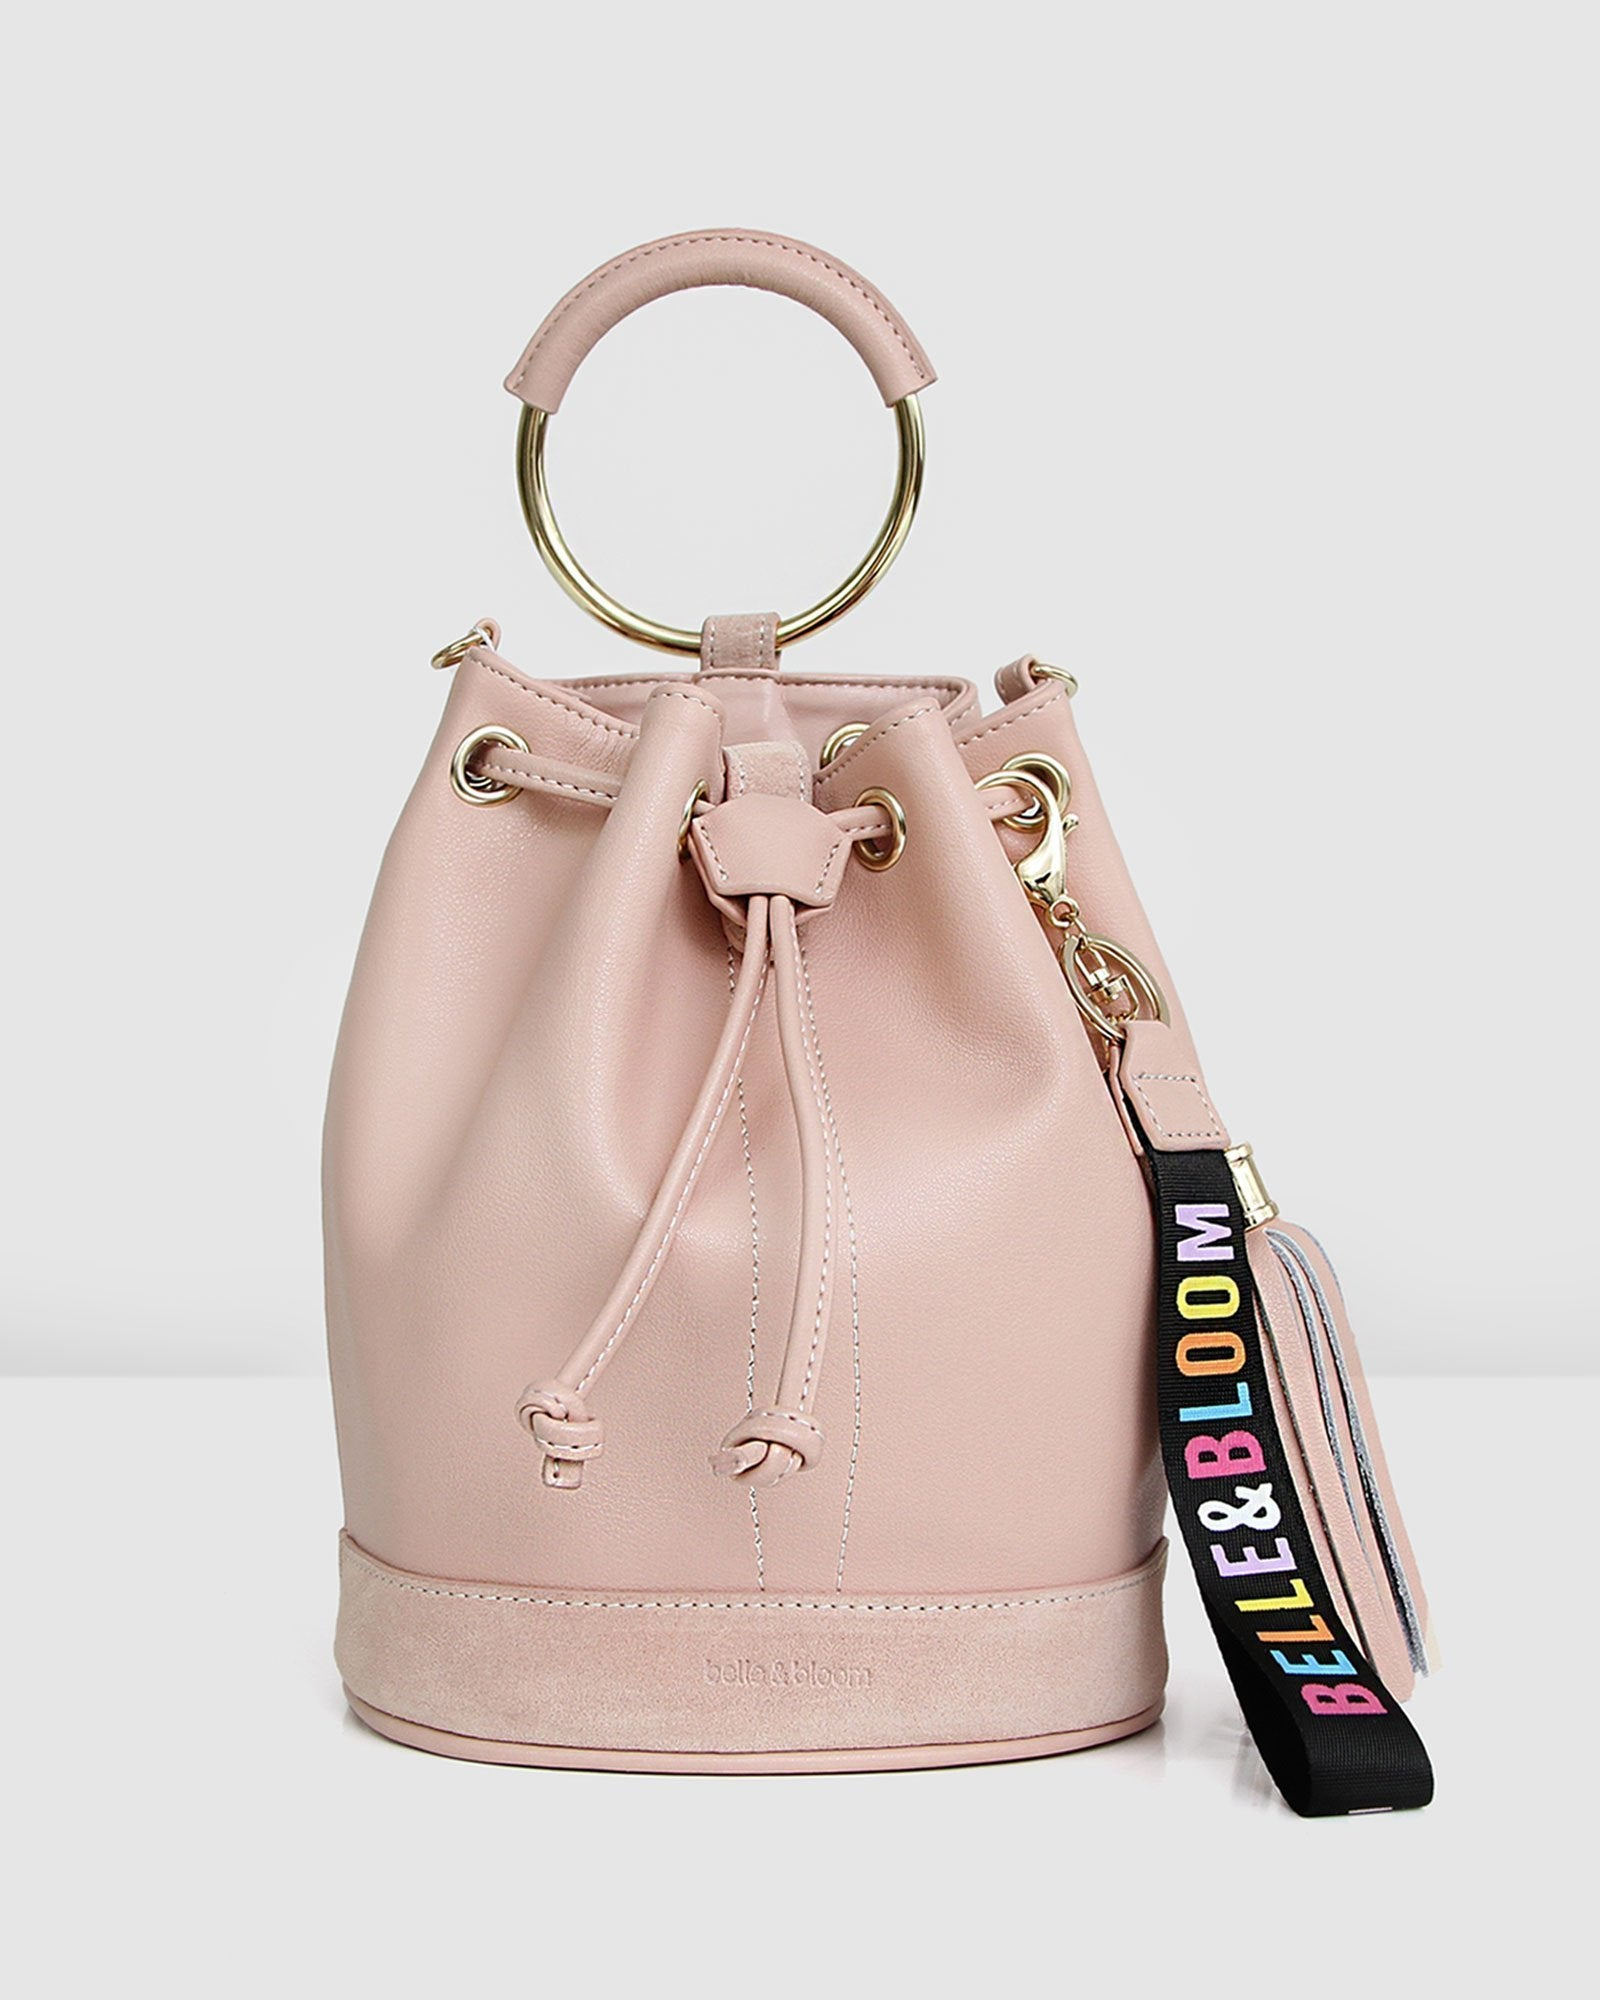 Rainbow Leather Bucket Bag - Blush Pink